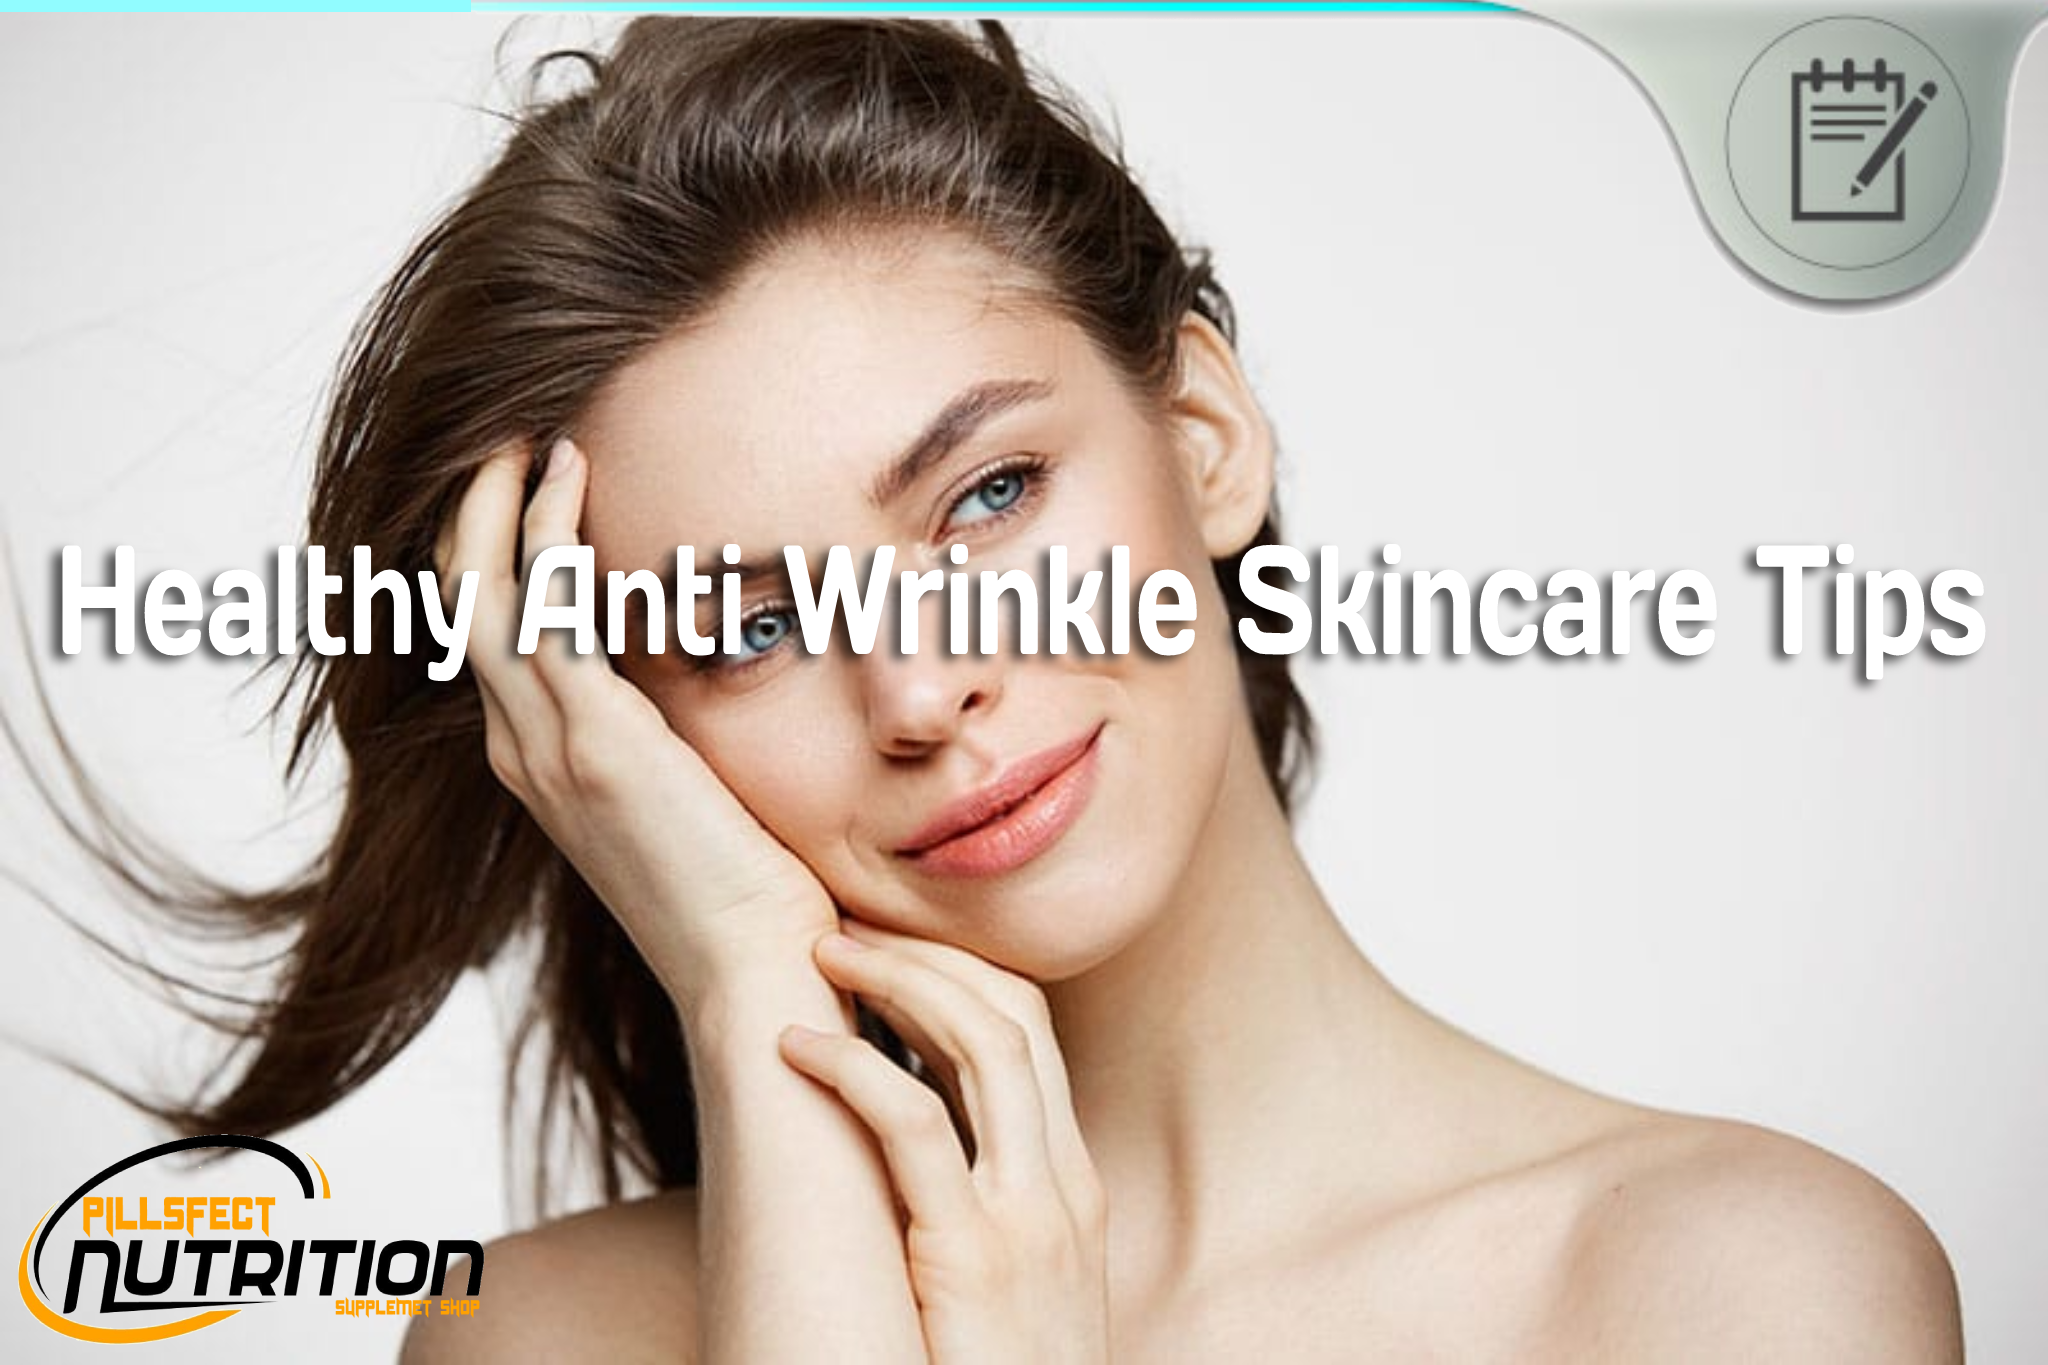 Healthy Anti Wrinkle Skincare Tips - How Can I Stop My Face From Aging?